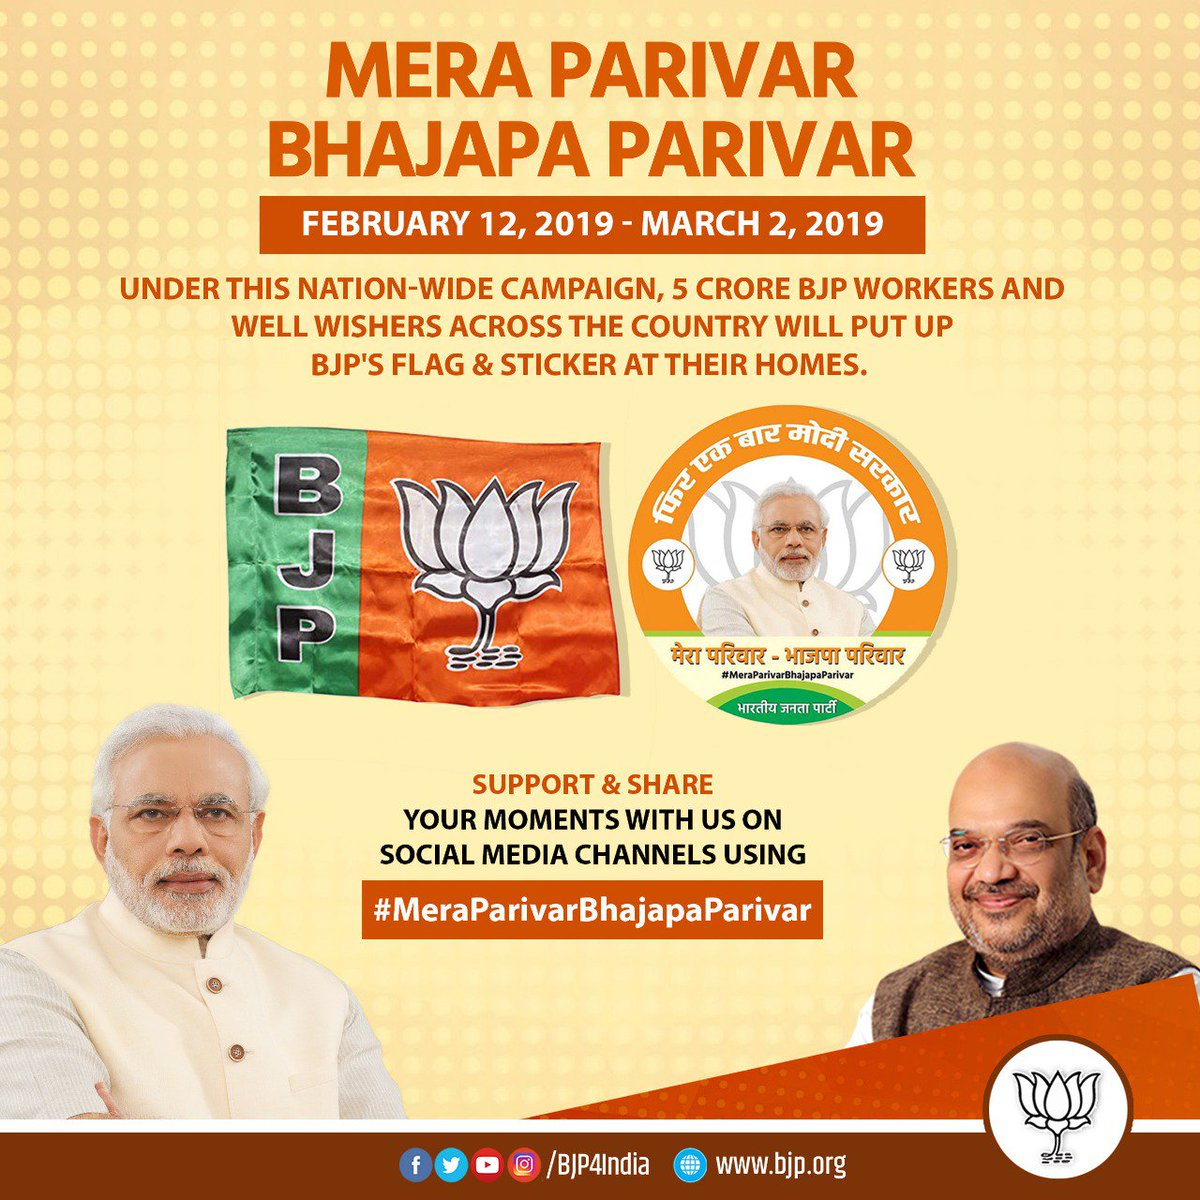 'Mera Parivar Bhajapa Parivar', a nation-wide campaign, 5 crore BJP workers and well wishers across the country will put up BJP's flag and stickers at their homes.  We urge you to show your support to this campaign. Share your moments with us using #MeraParivarBhajapaParivar.